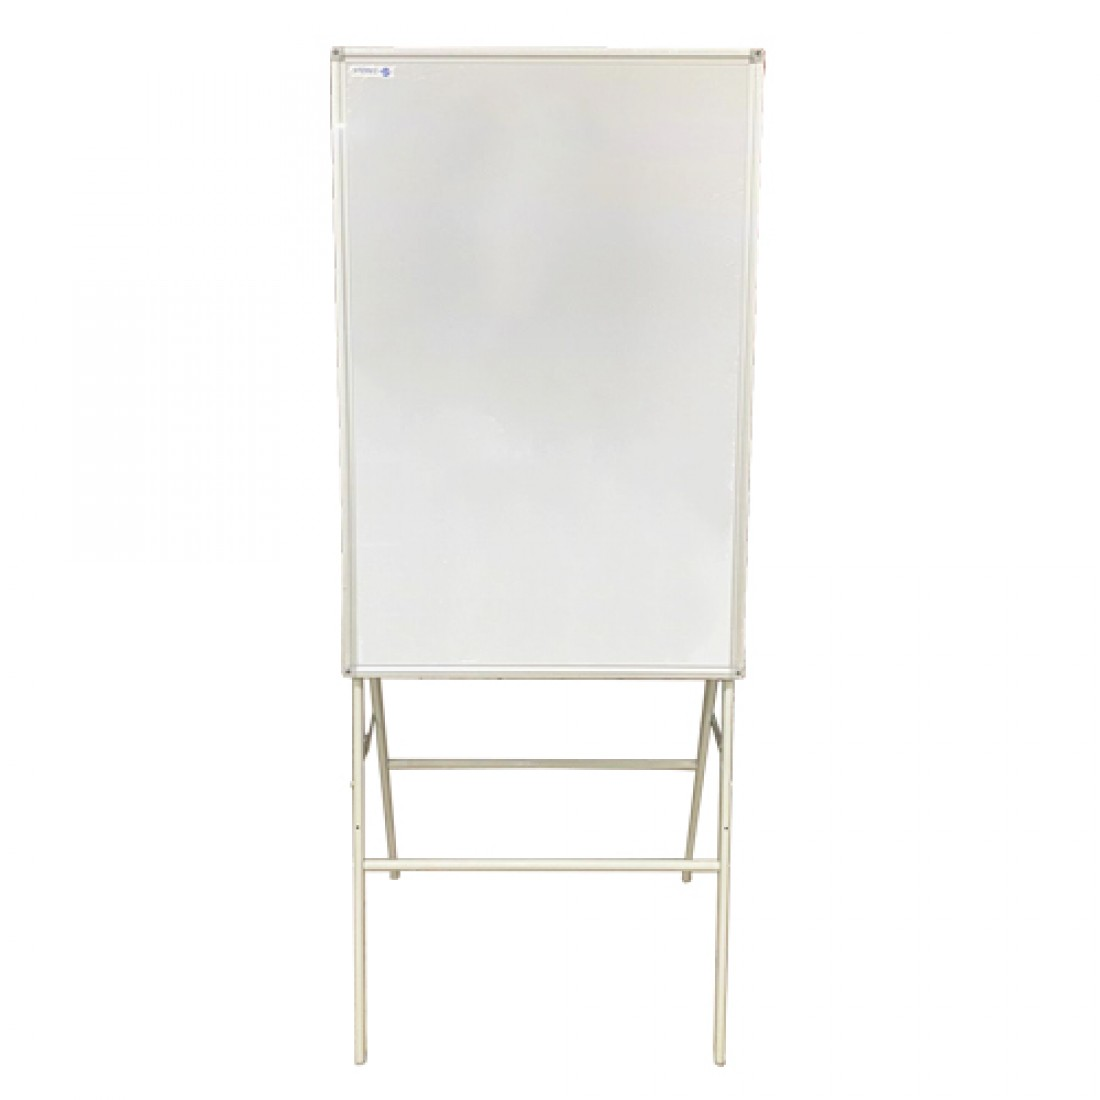 Boards, SIMBA, Magnetic Whiteboard with Stand, (60x90cm), White